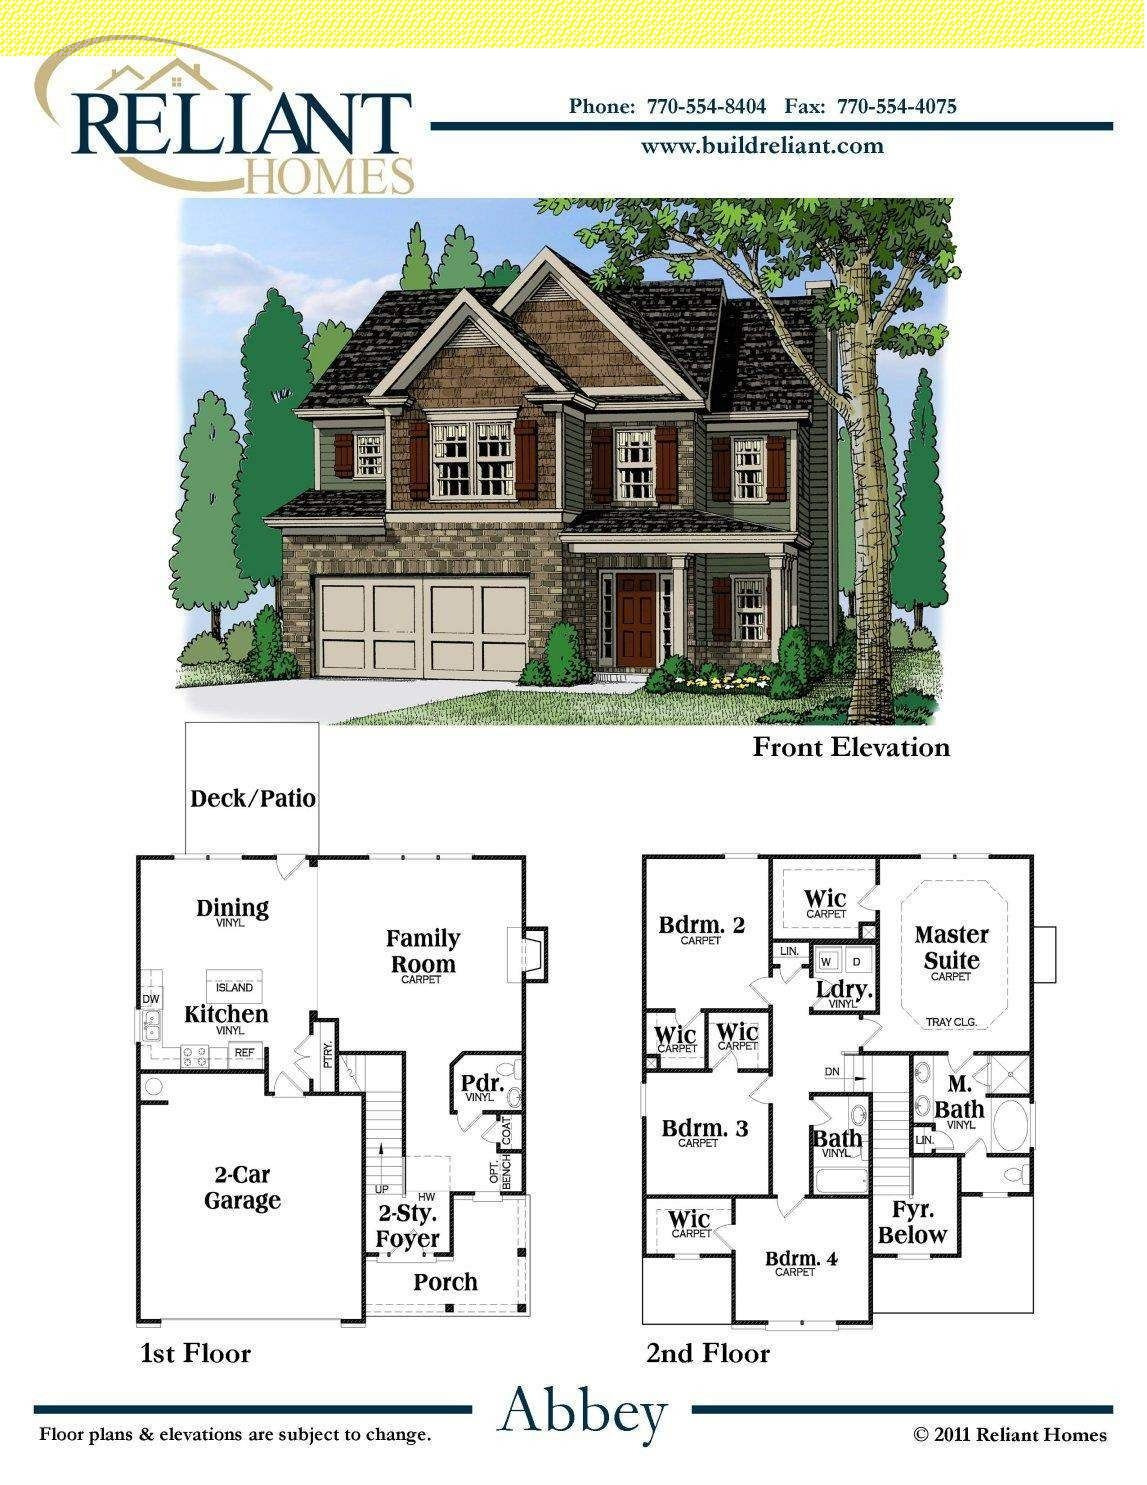 Architect House Plans for Sale New Reliant Homes the Abbey Plan Floor Plans Homes